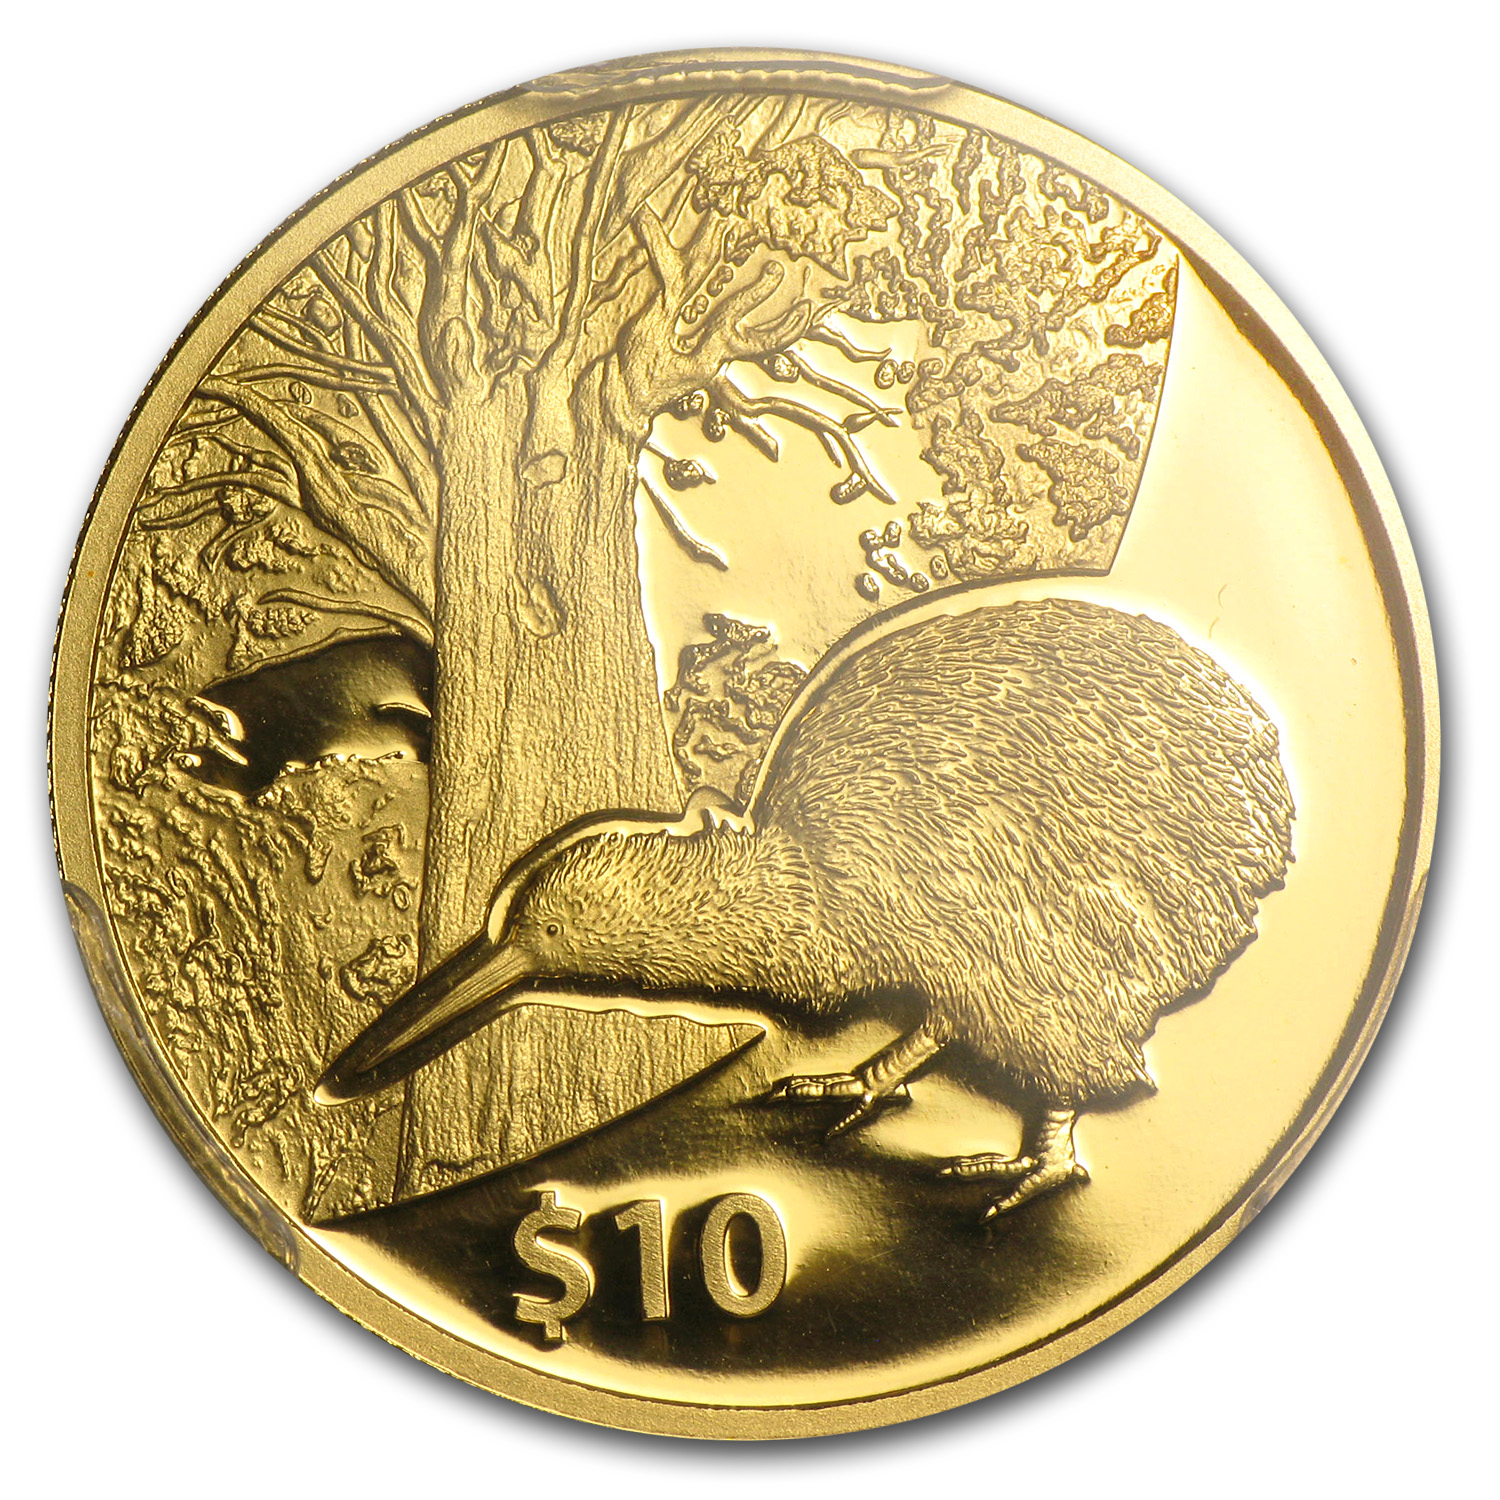 2013 New Zealand 1/4 oz Proof Gold $10 Tane Mahuta PR-69 PCGS